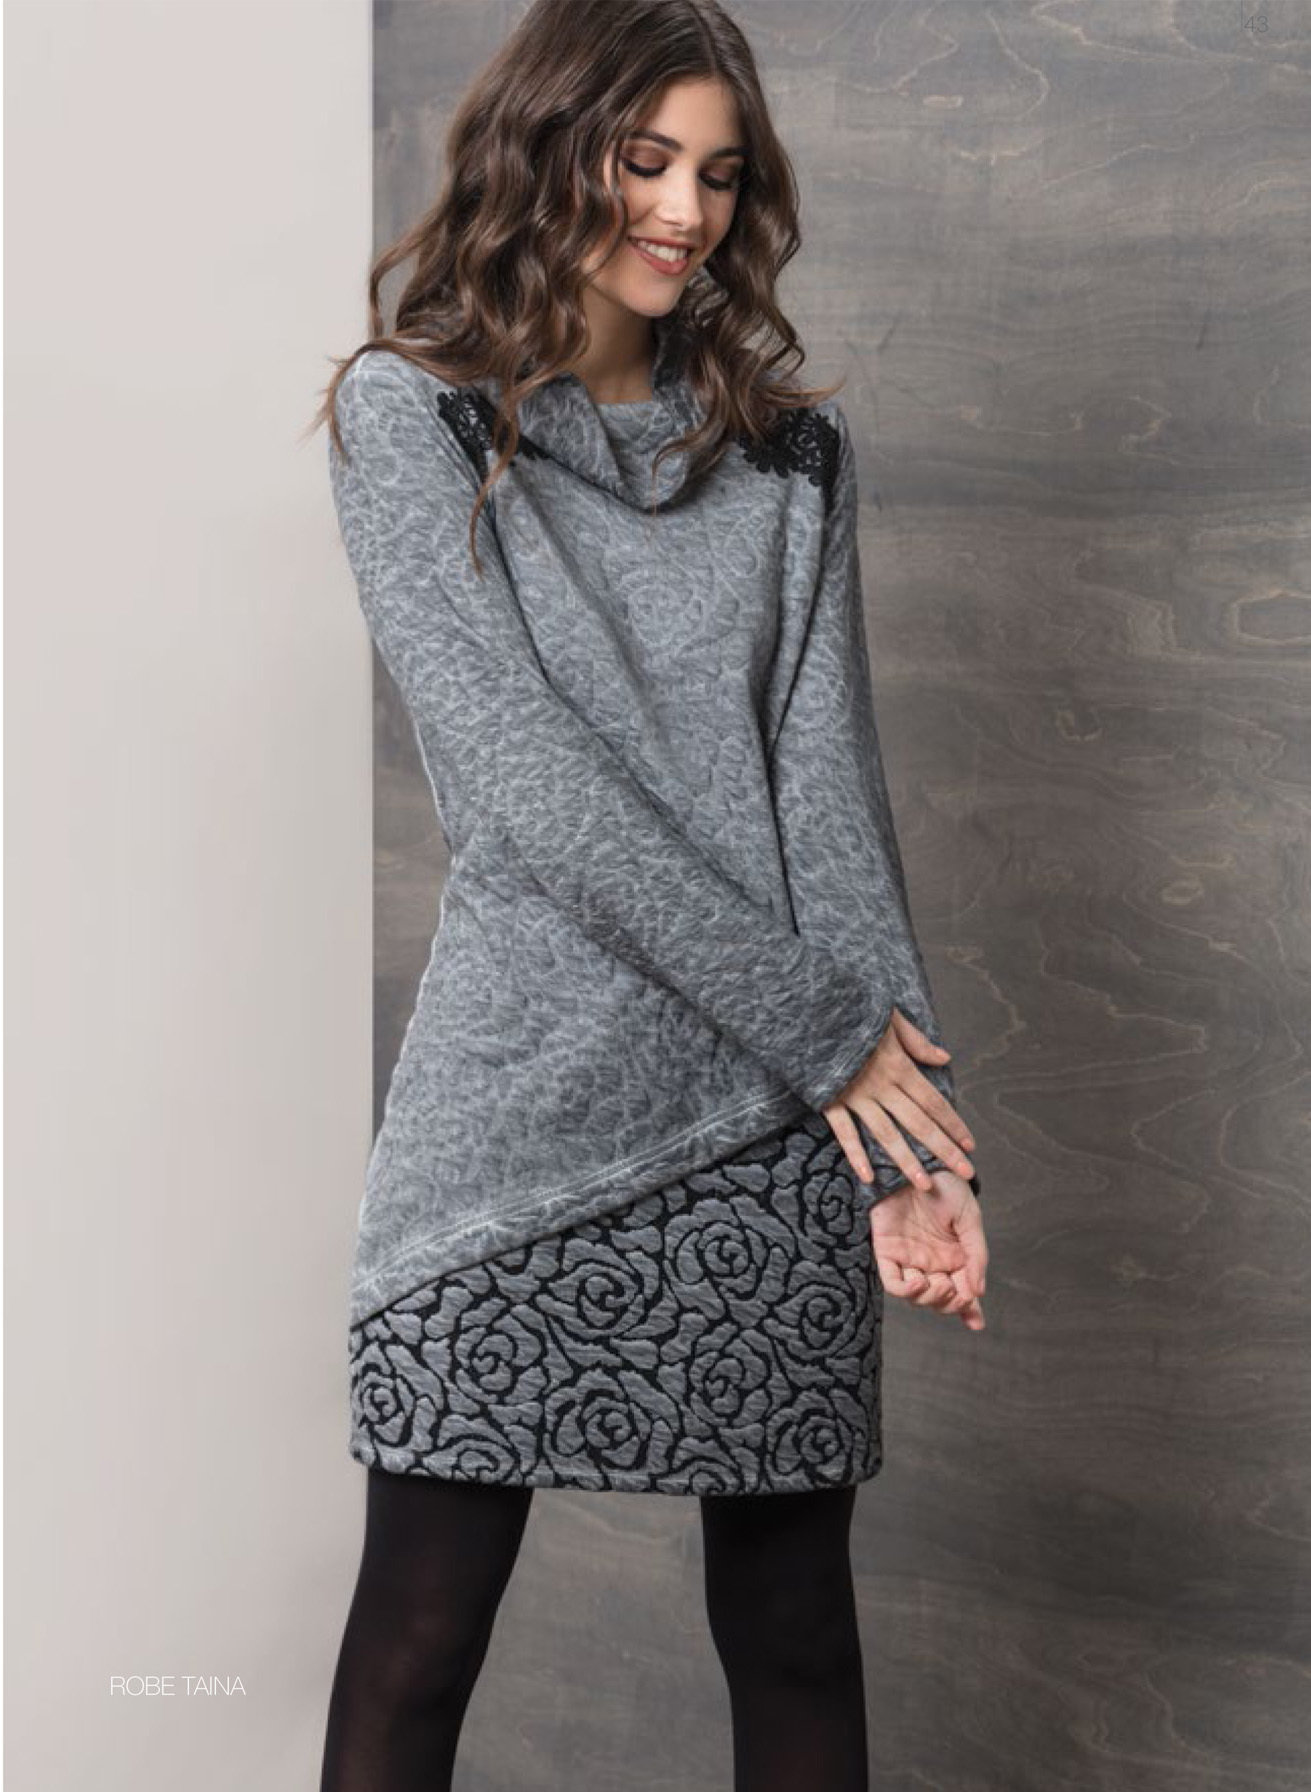 Maloka: Rose Imprinted Angled Hem Sweater Dress (More Arrived!) MK_TAINA_N5